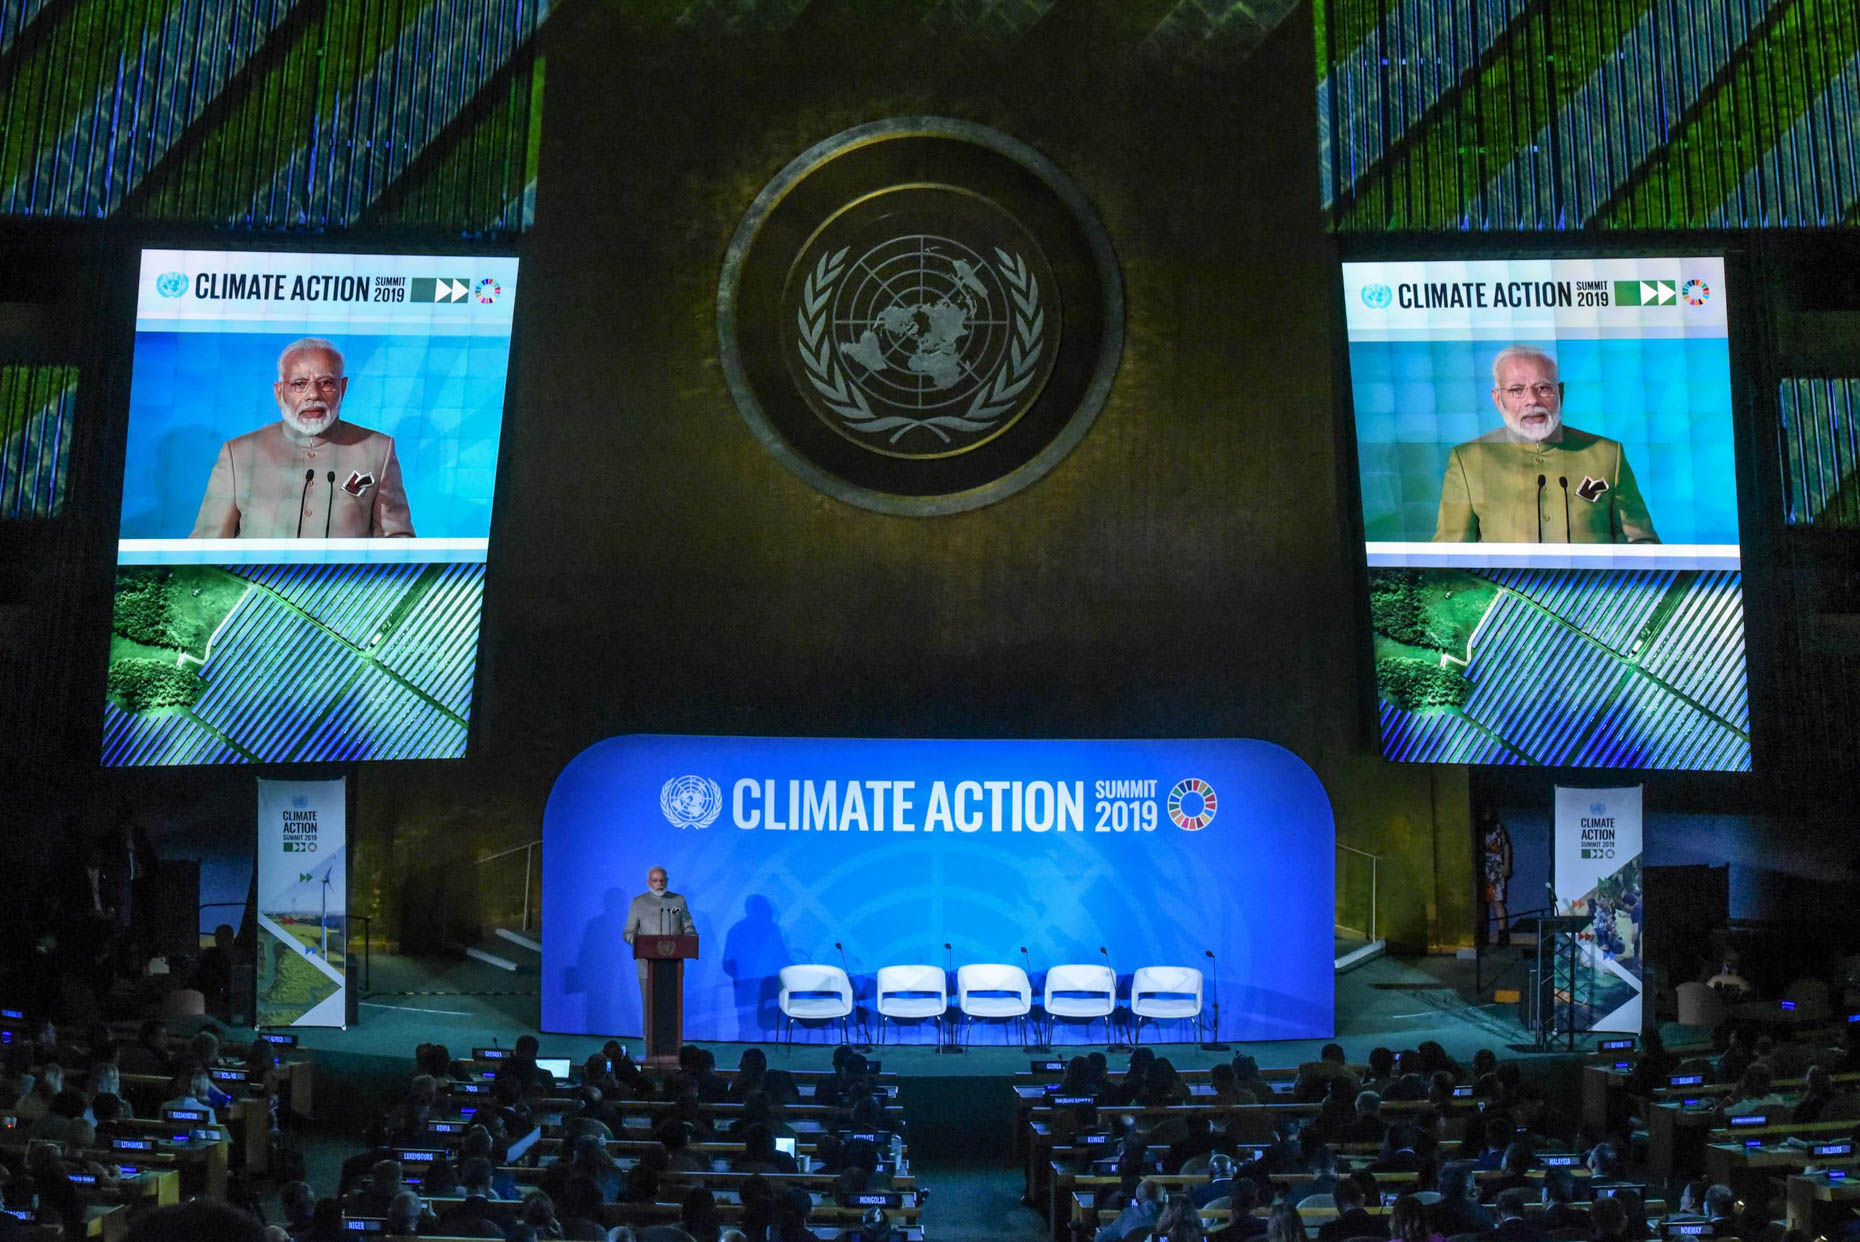 GettyImages 1170496808 lg - Covid-19 gave the world a chance to fix the climate crisis. We're about to waste it. -